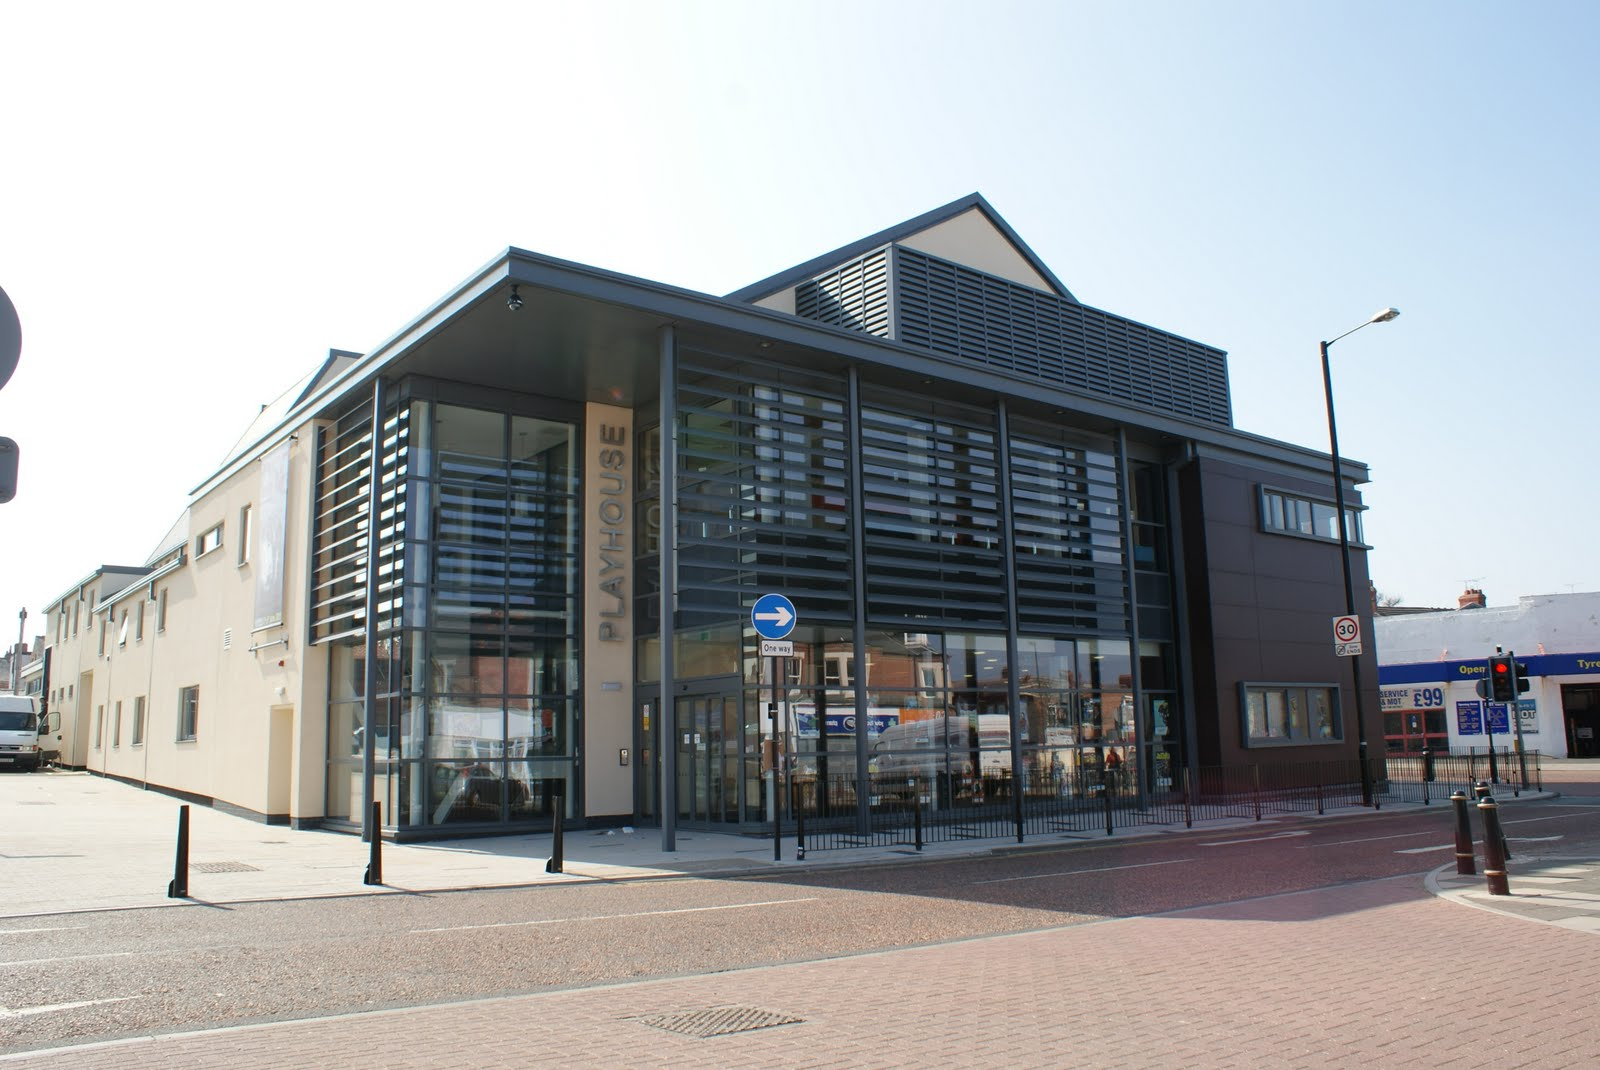 WHITLEY BAY PLAYHOUSE